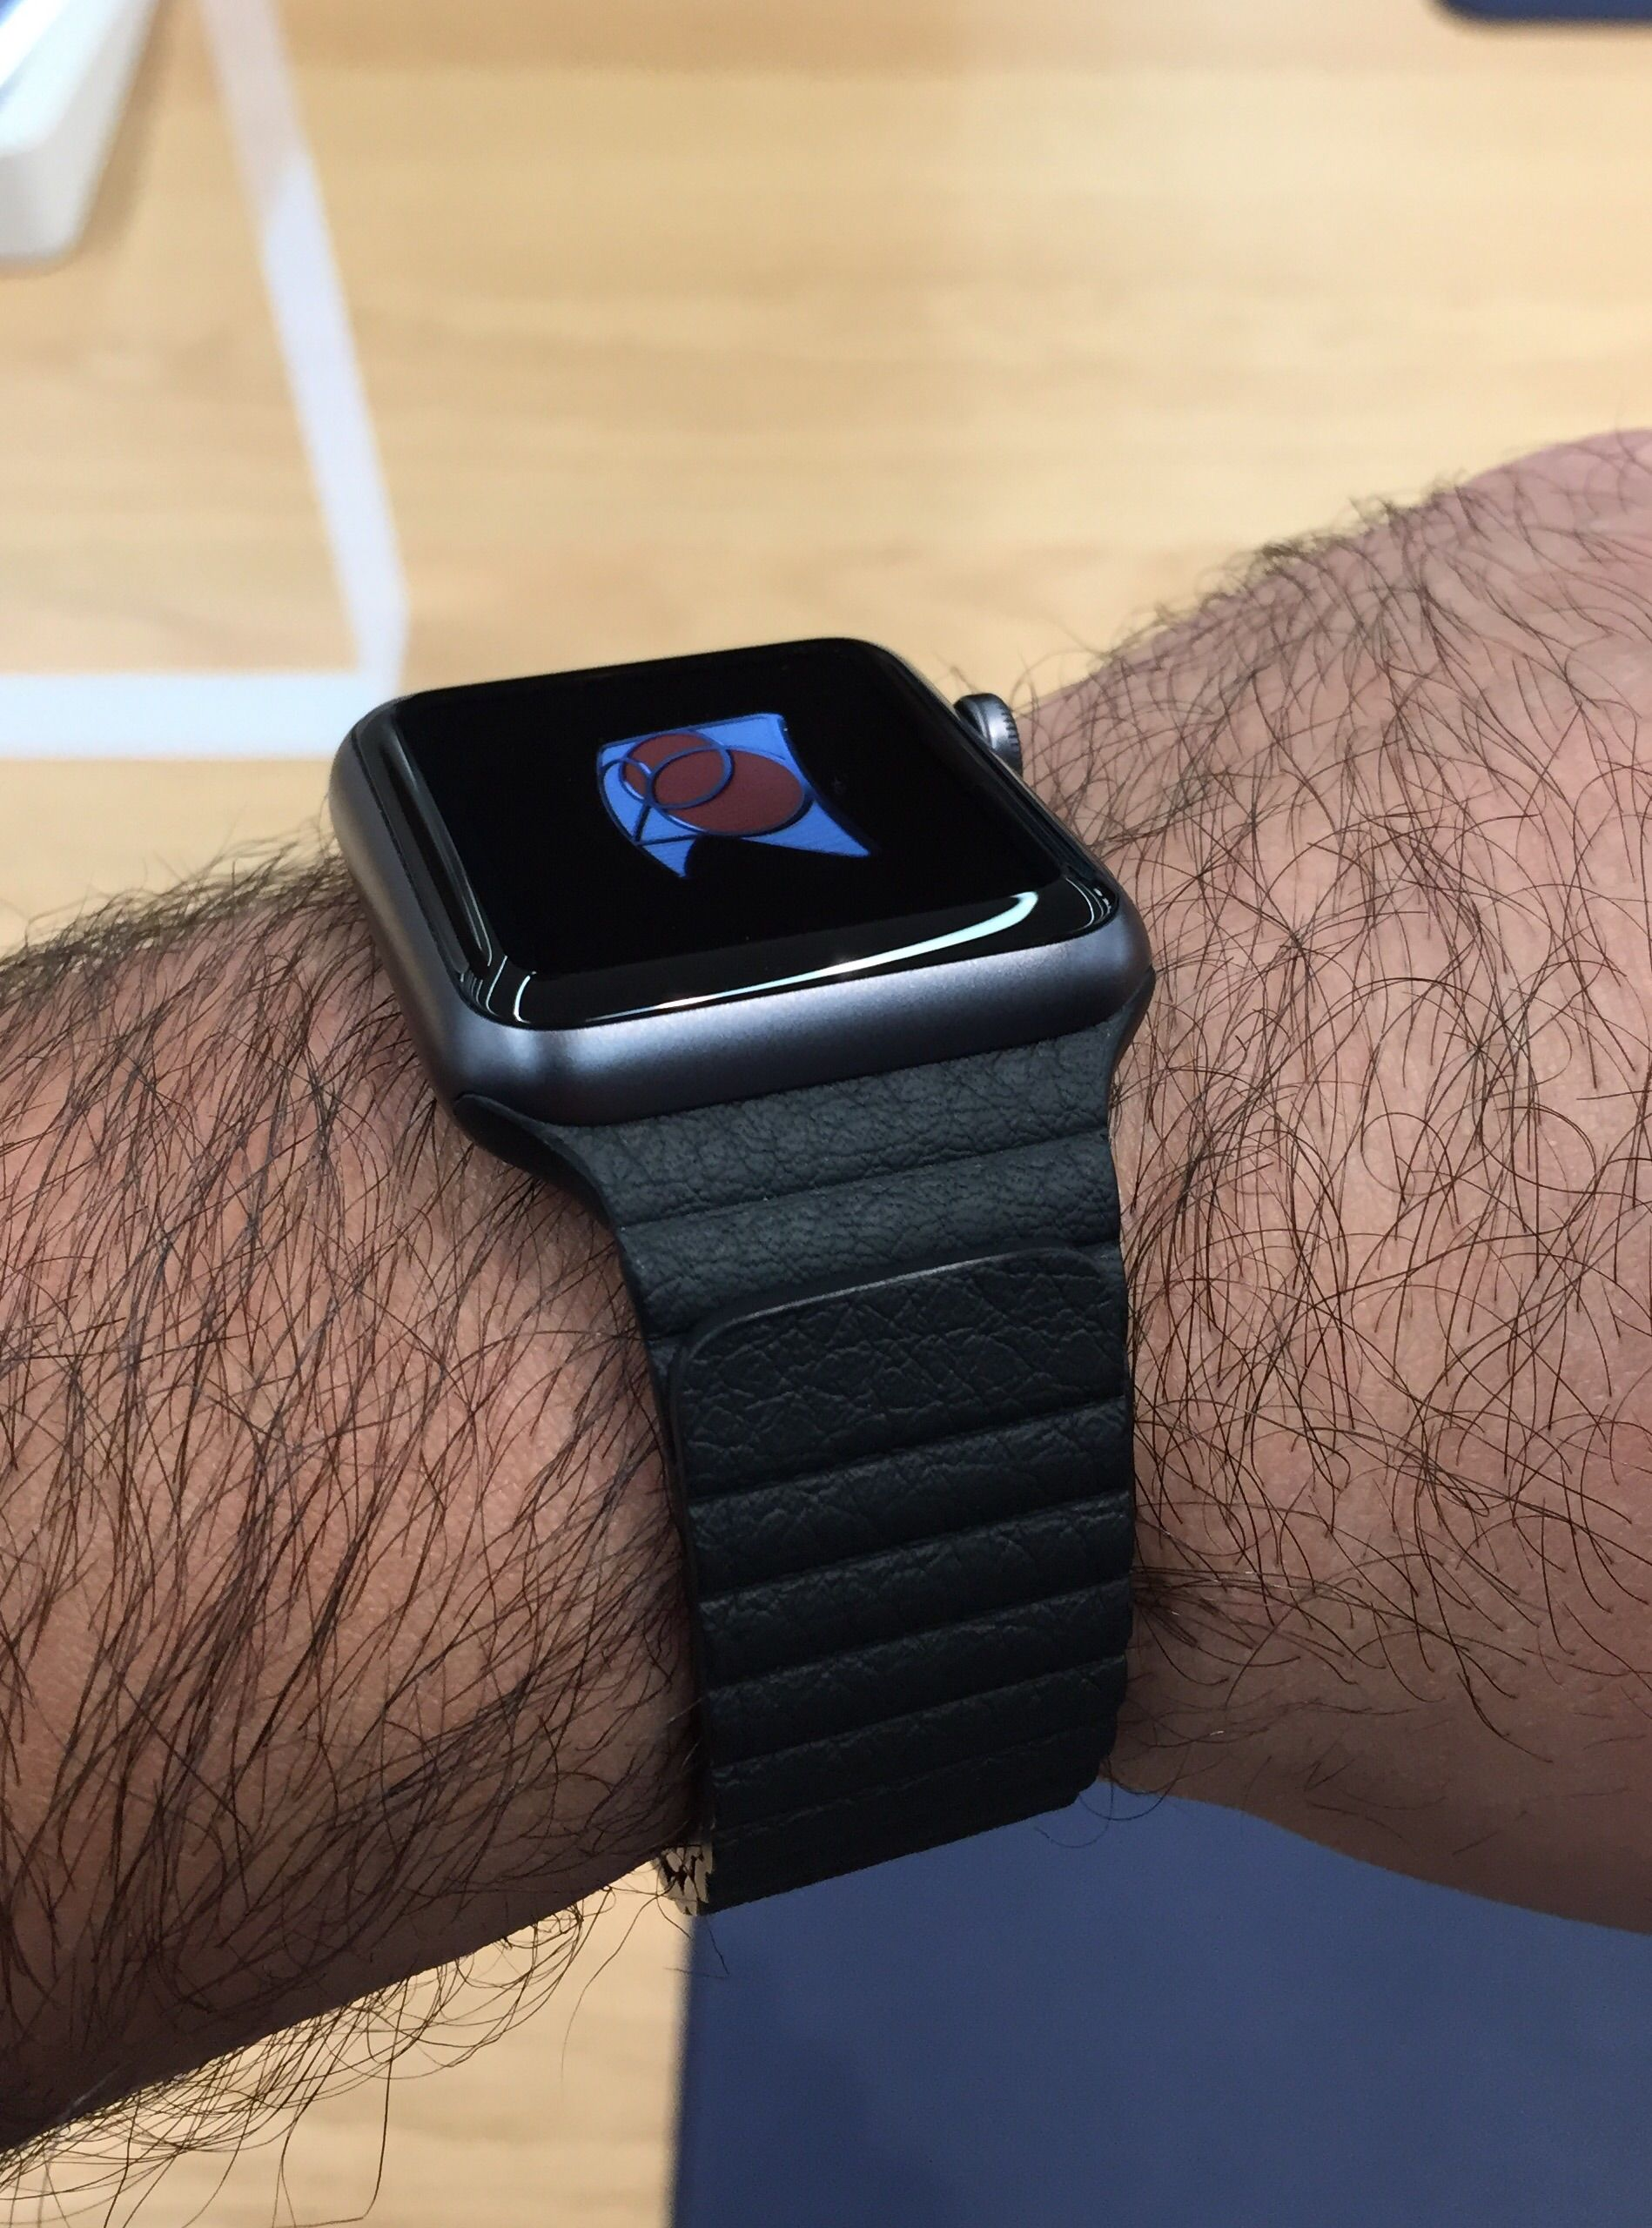 space milanese silver watches loop comments r aluminum the actually looks on grey applewatch quite decent